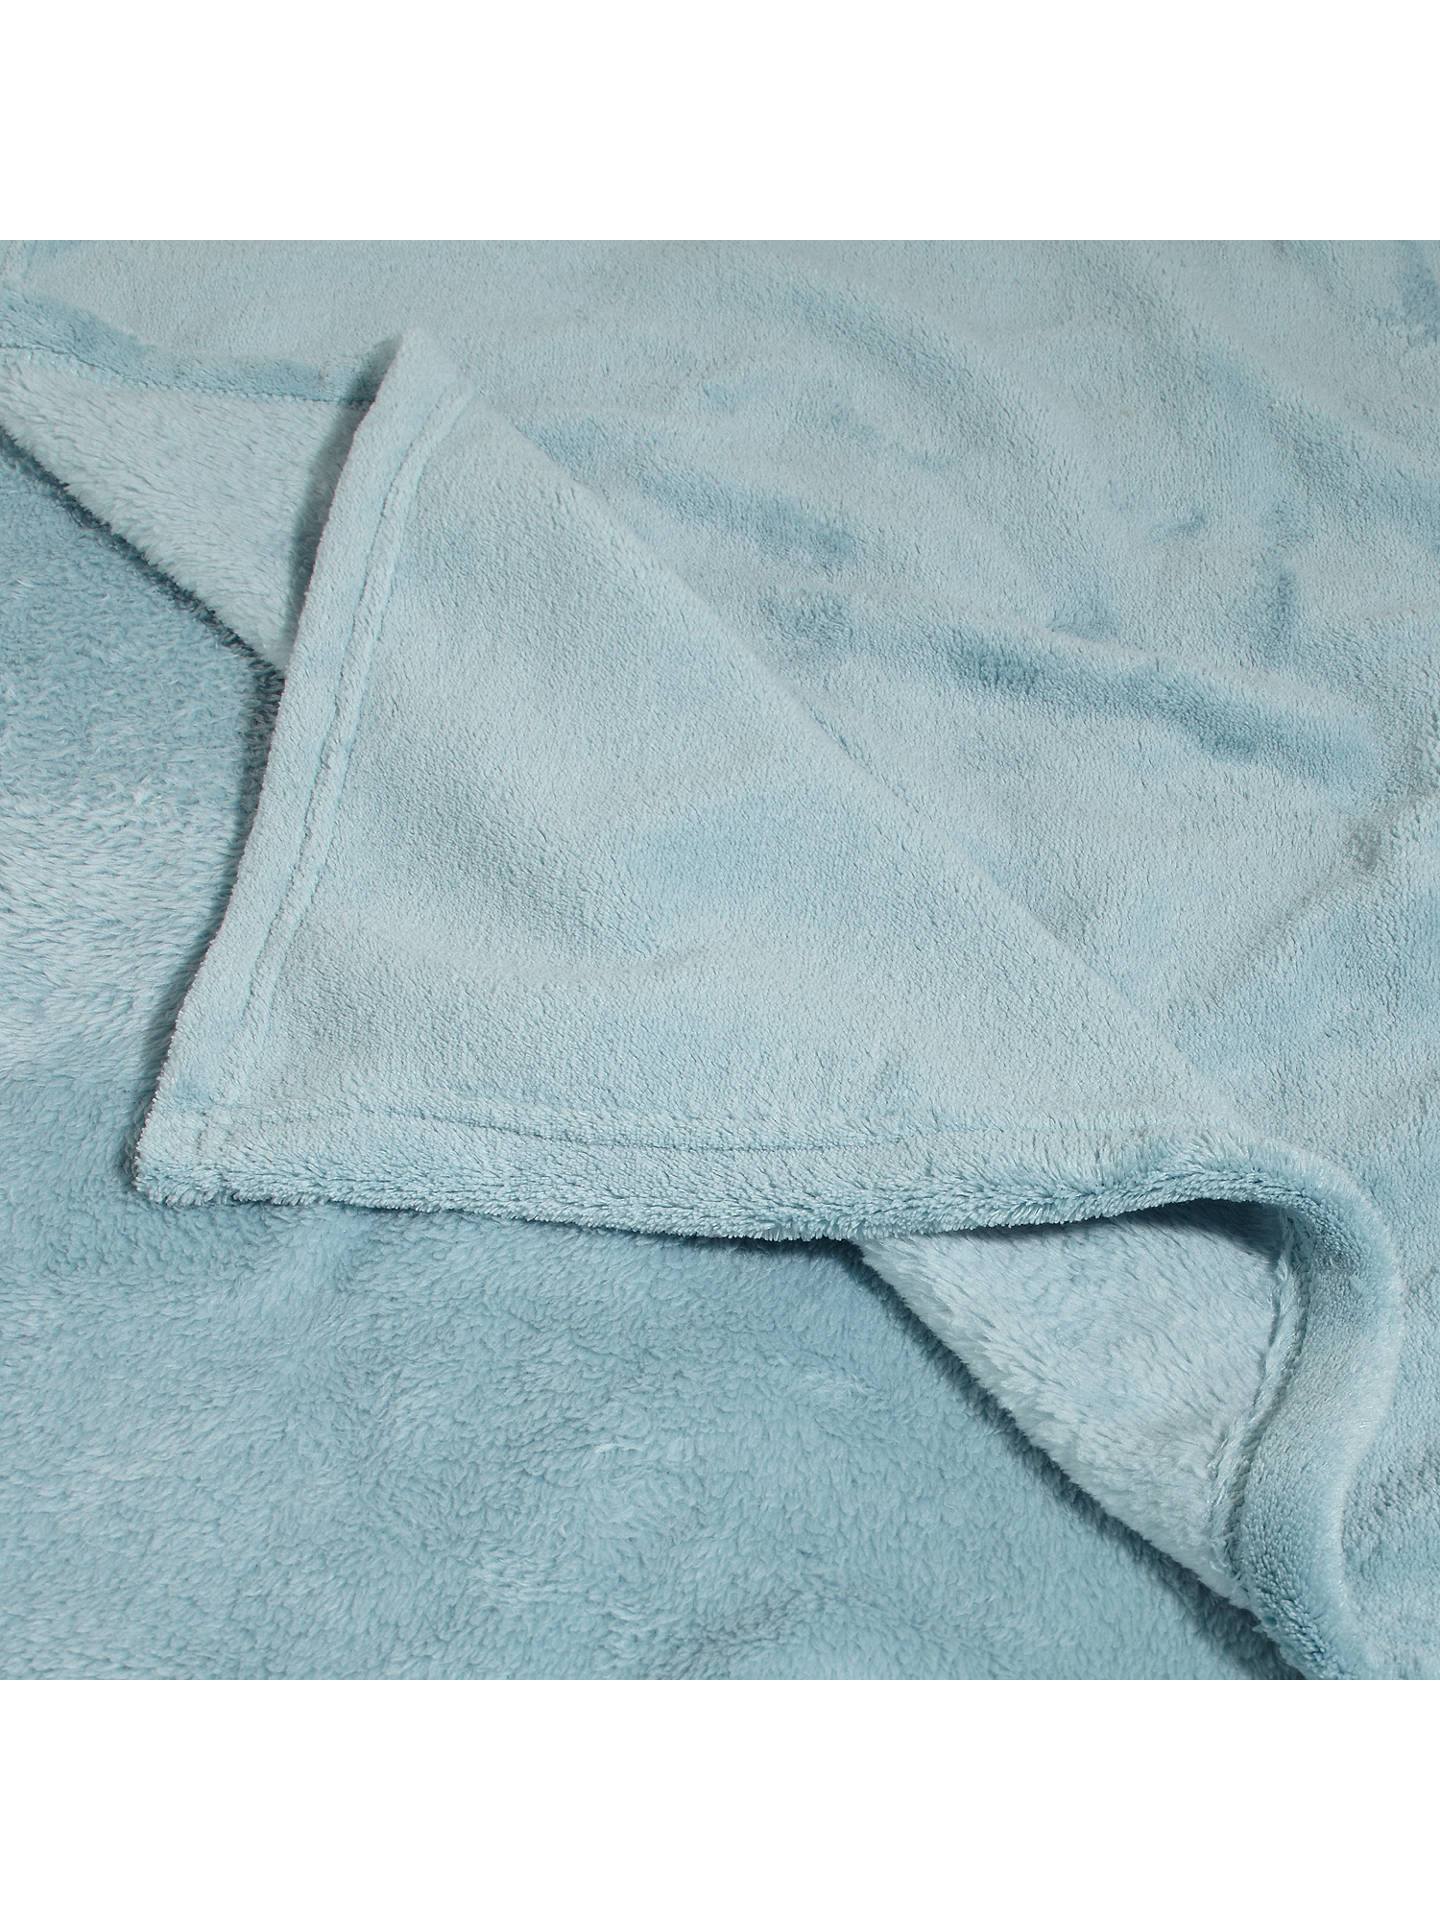 BuyJohn Lewis & Partners Fleece Throw, Duck Egg Online at johnlewis.com